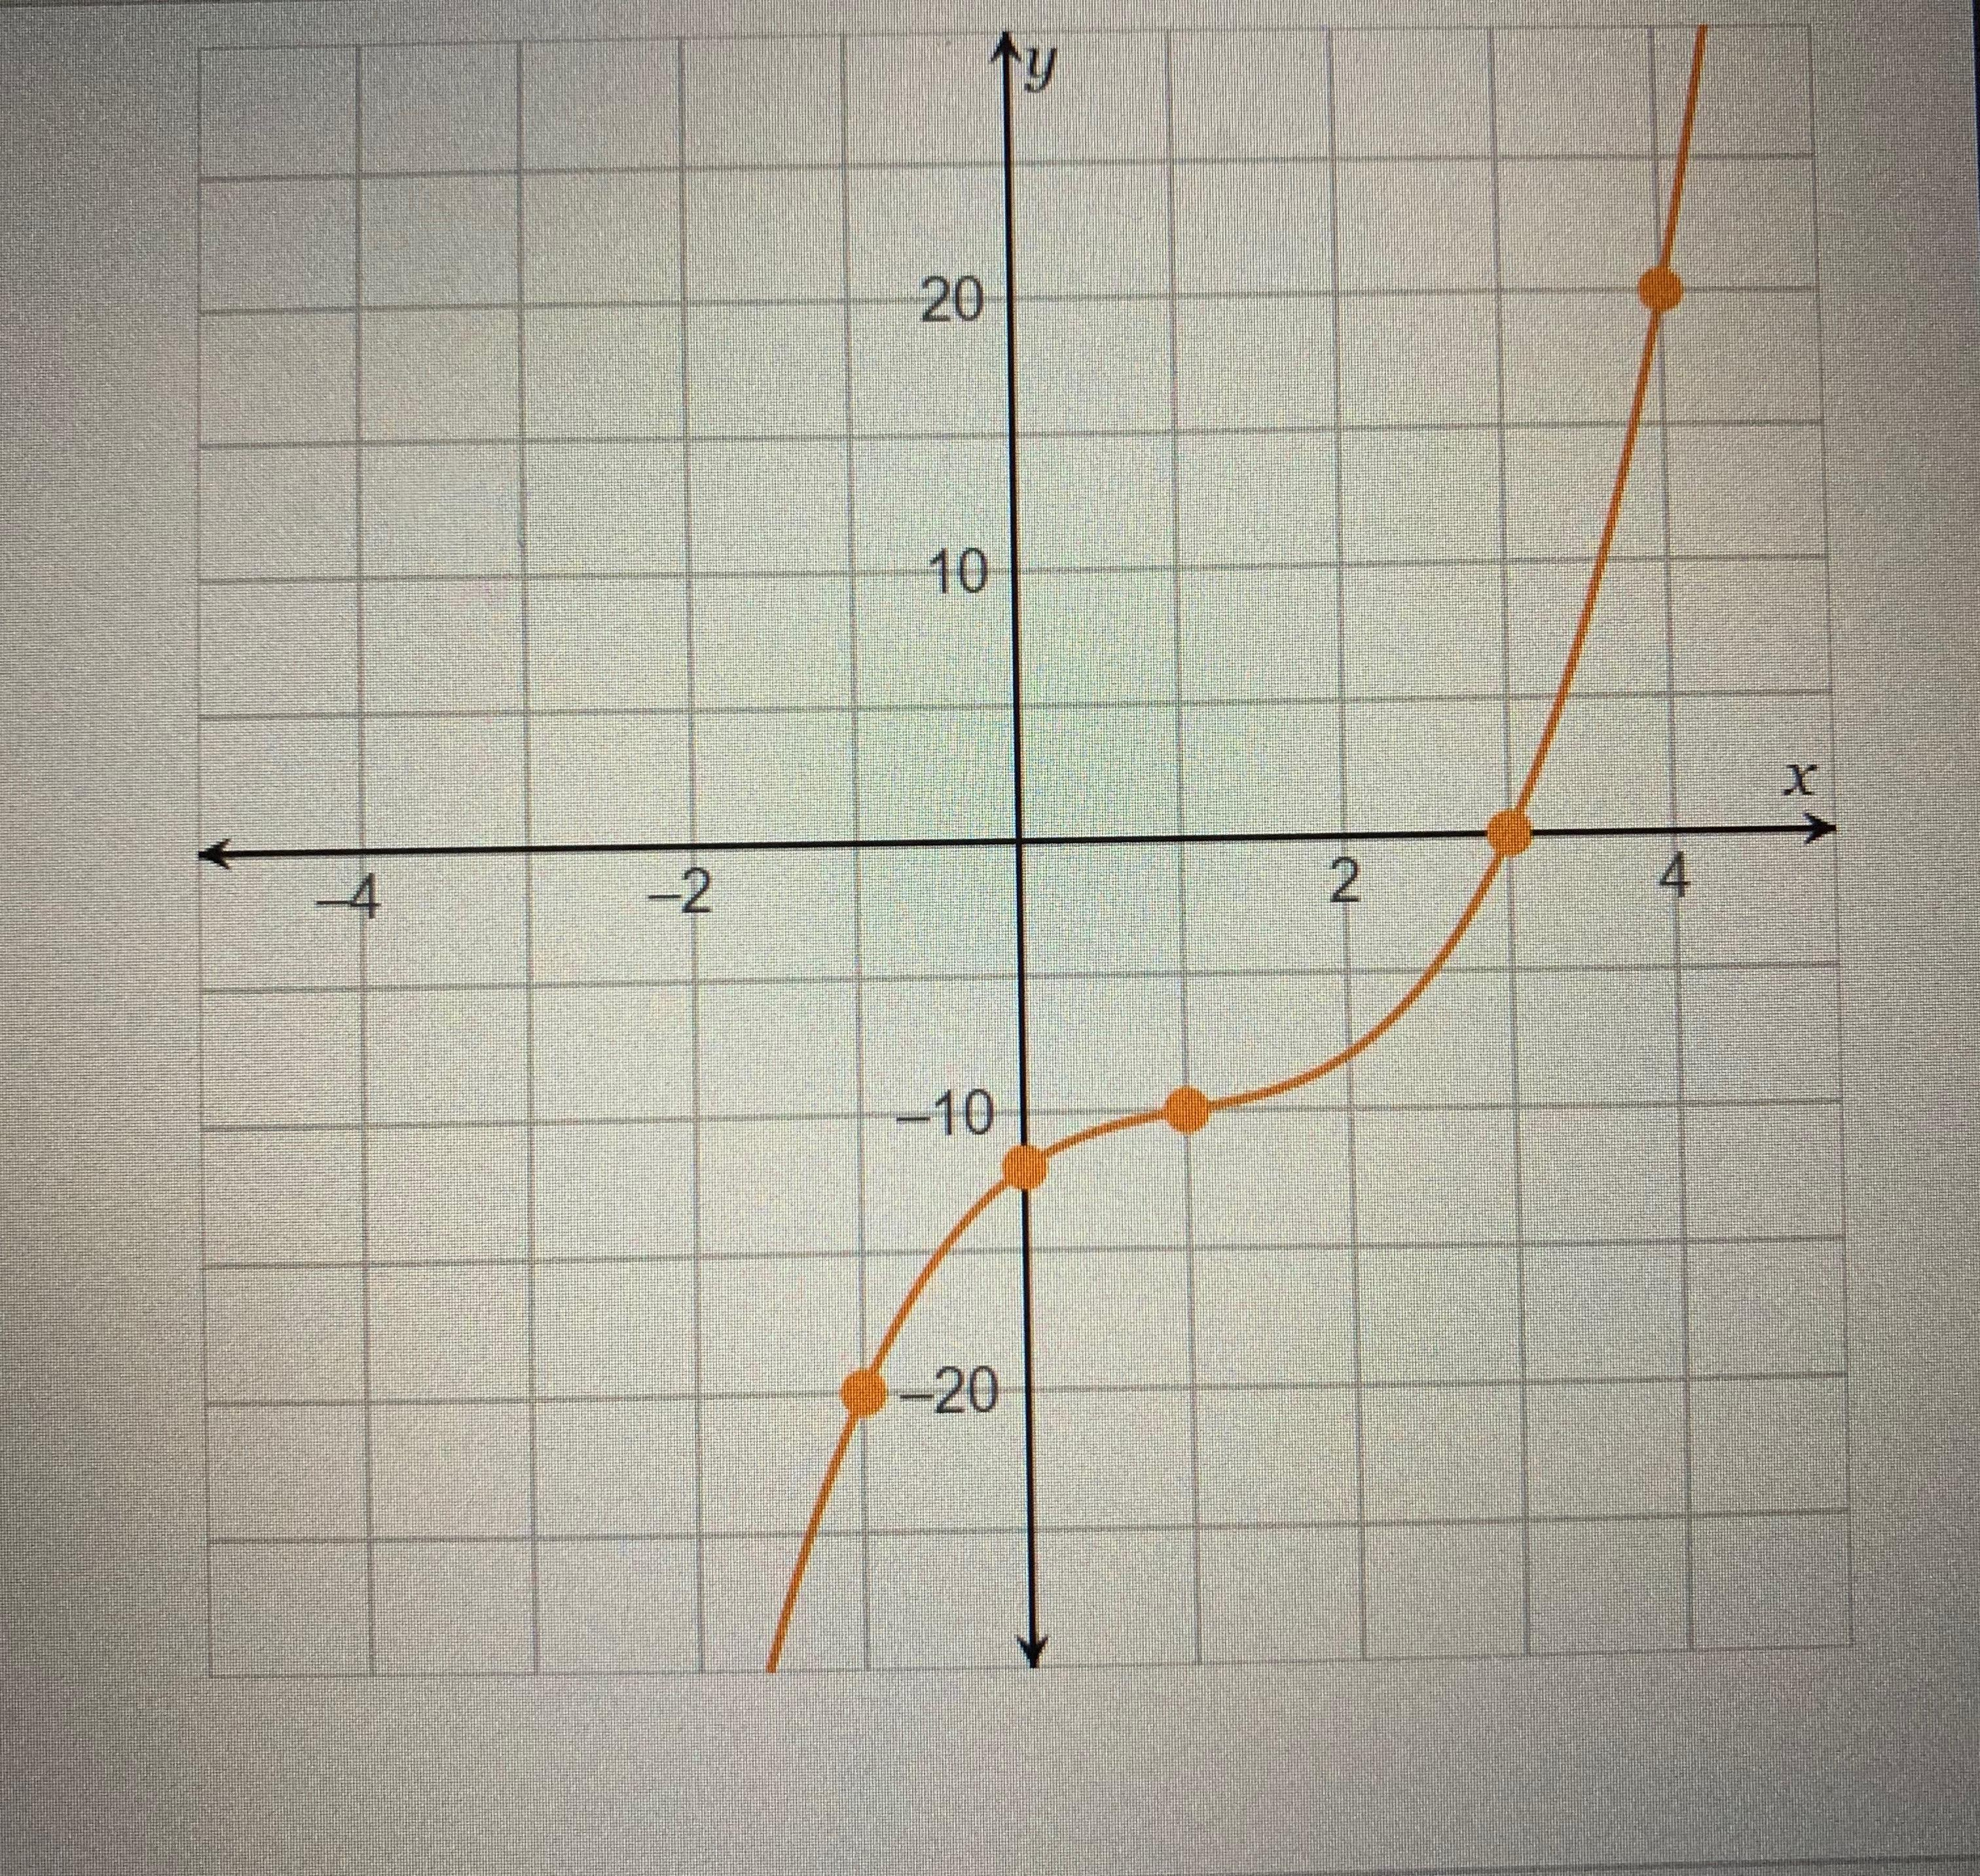 Use The Graphing Tool To Determine The Intercepts X